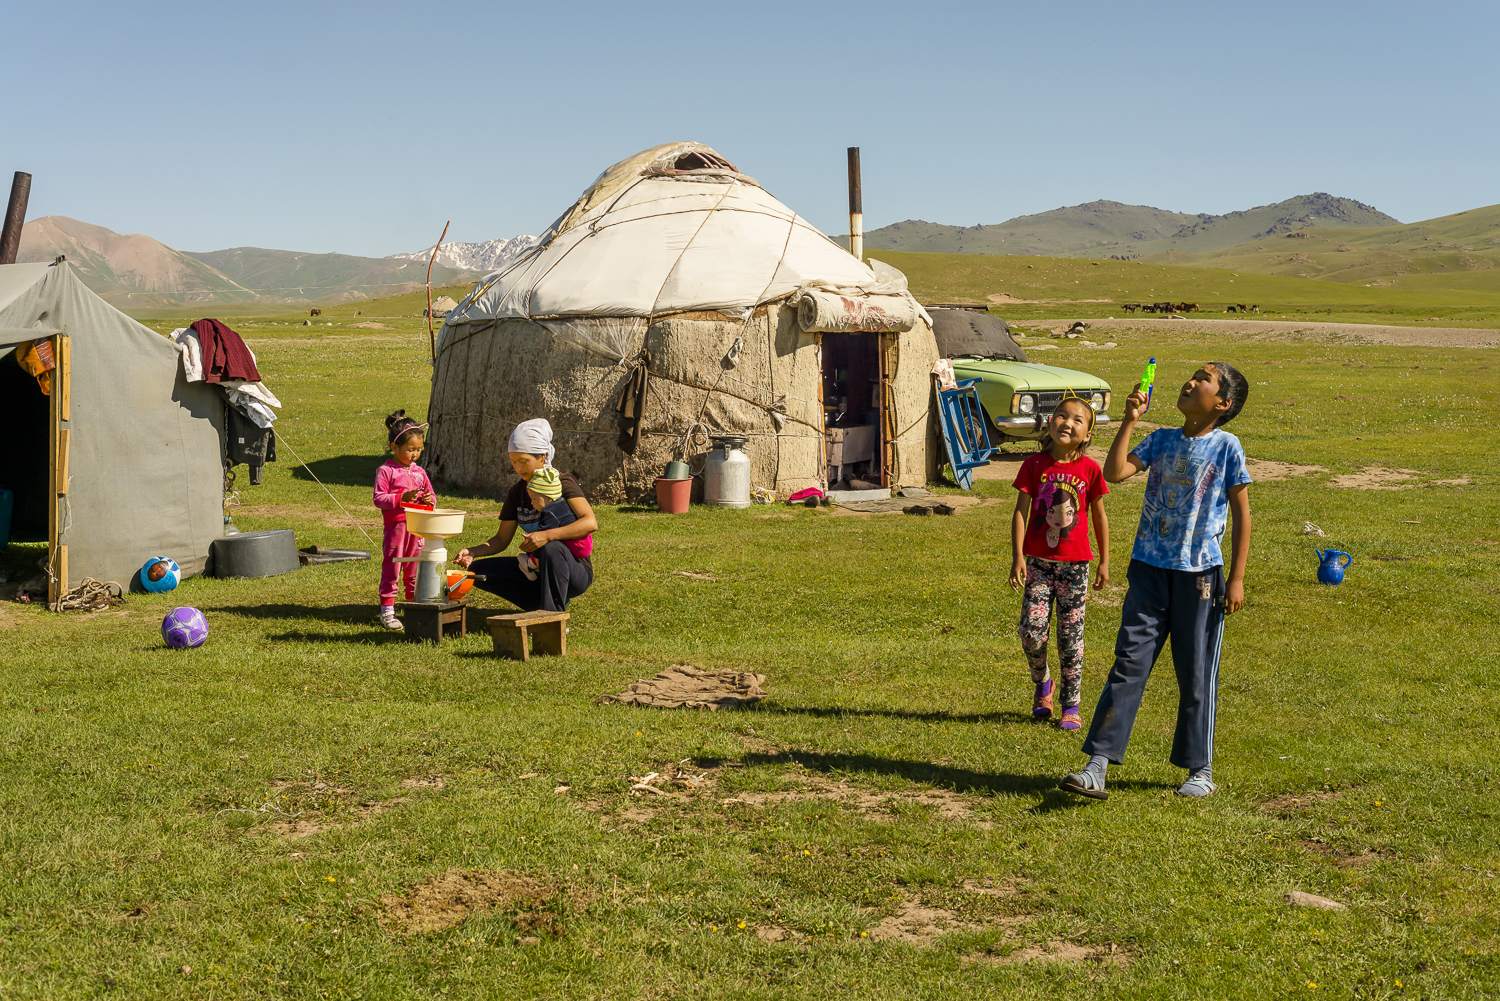 jo-kearney-photography-video-kyrgyzstan-nomads-family.jpg